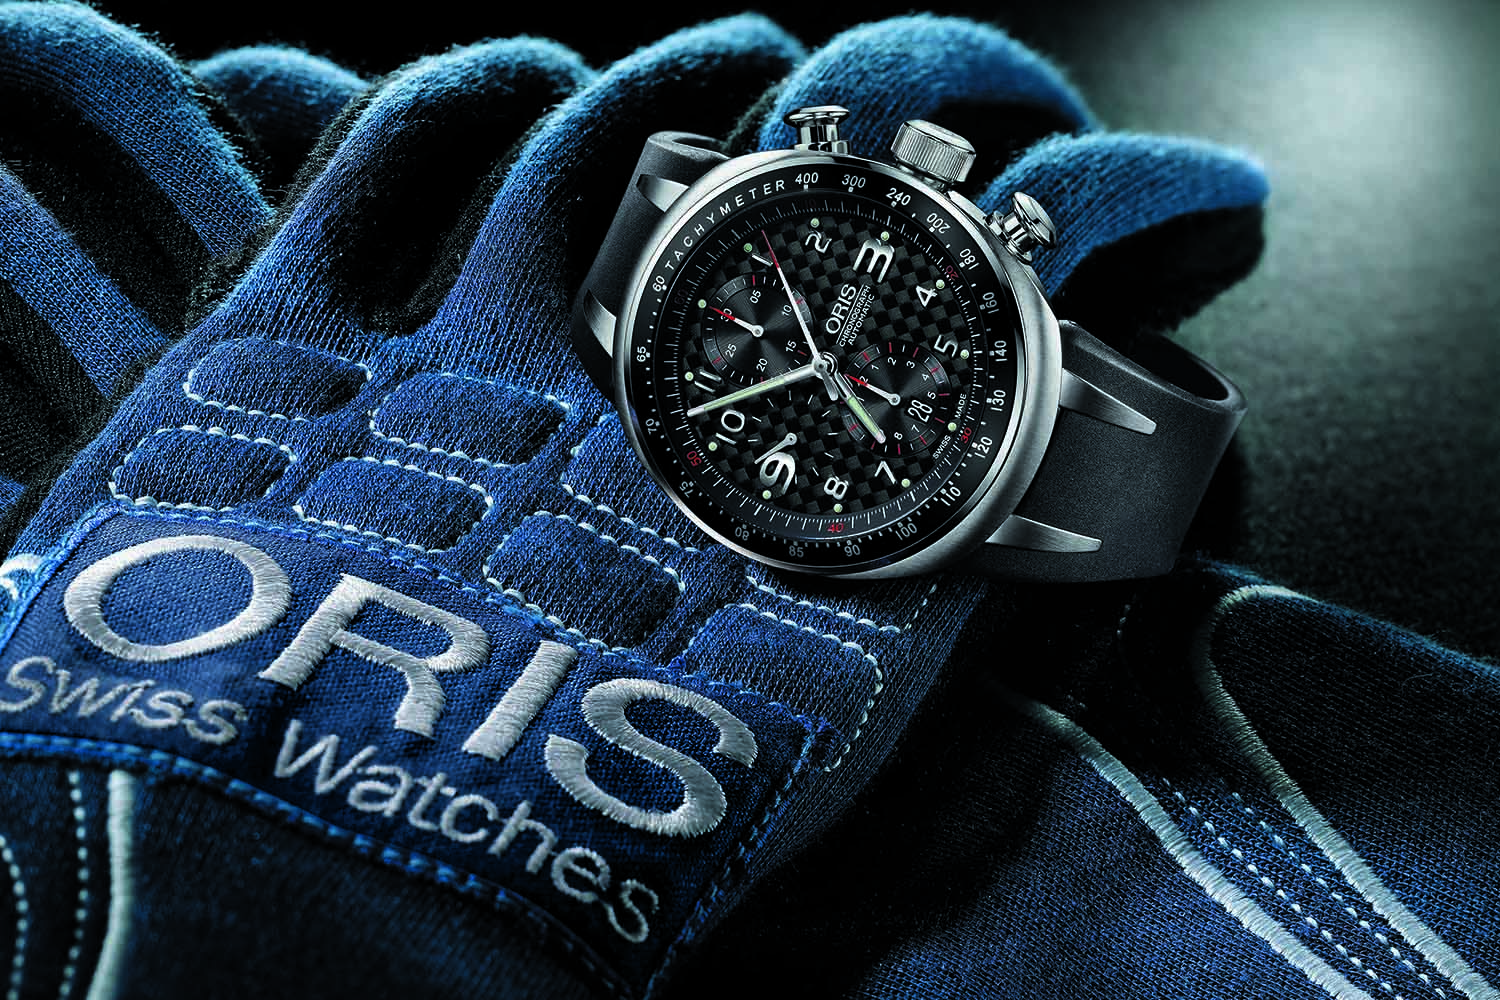 Oris_Williams_TT3_Limited_Edition_1